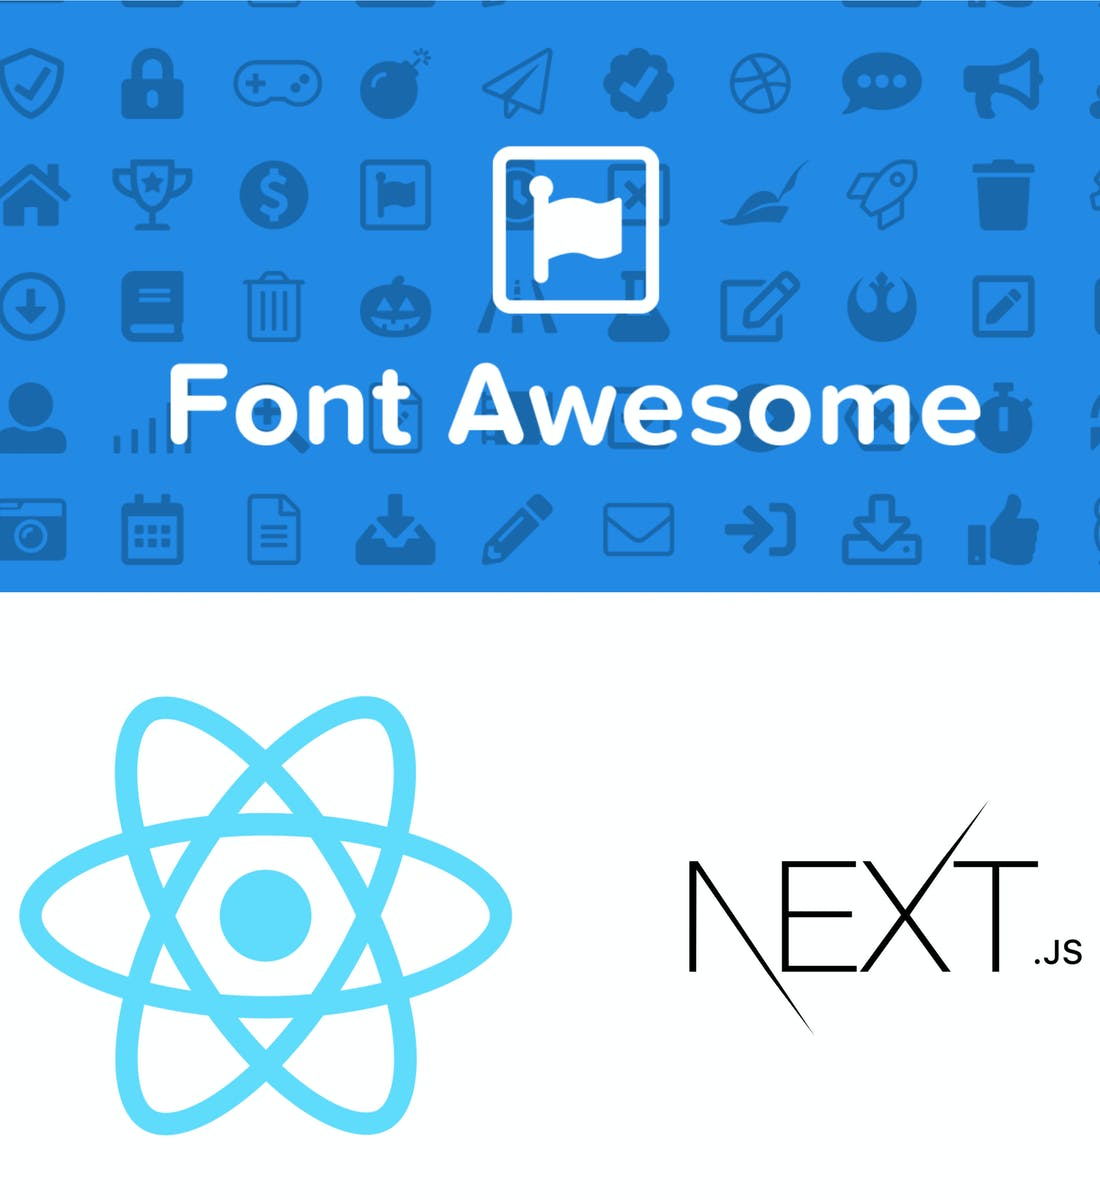 Integrate Font Awesome with React and Next Js Applications